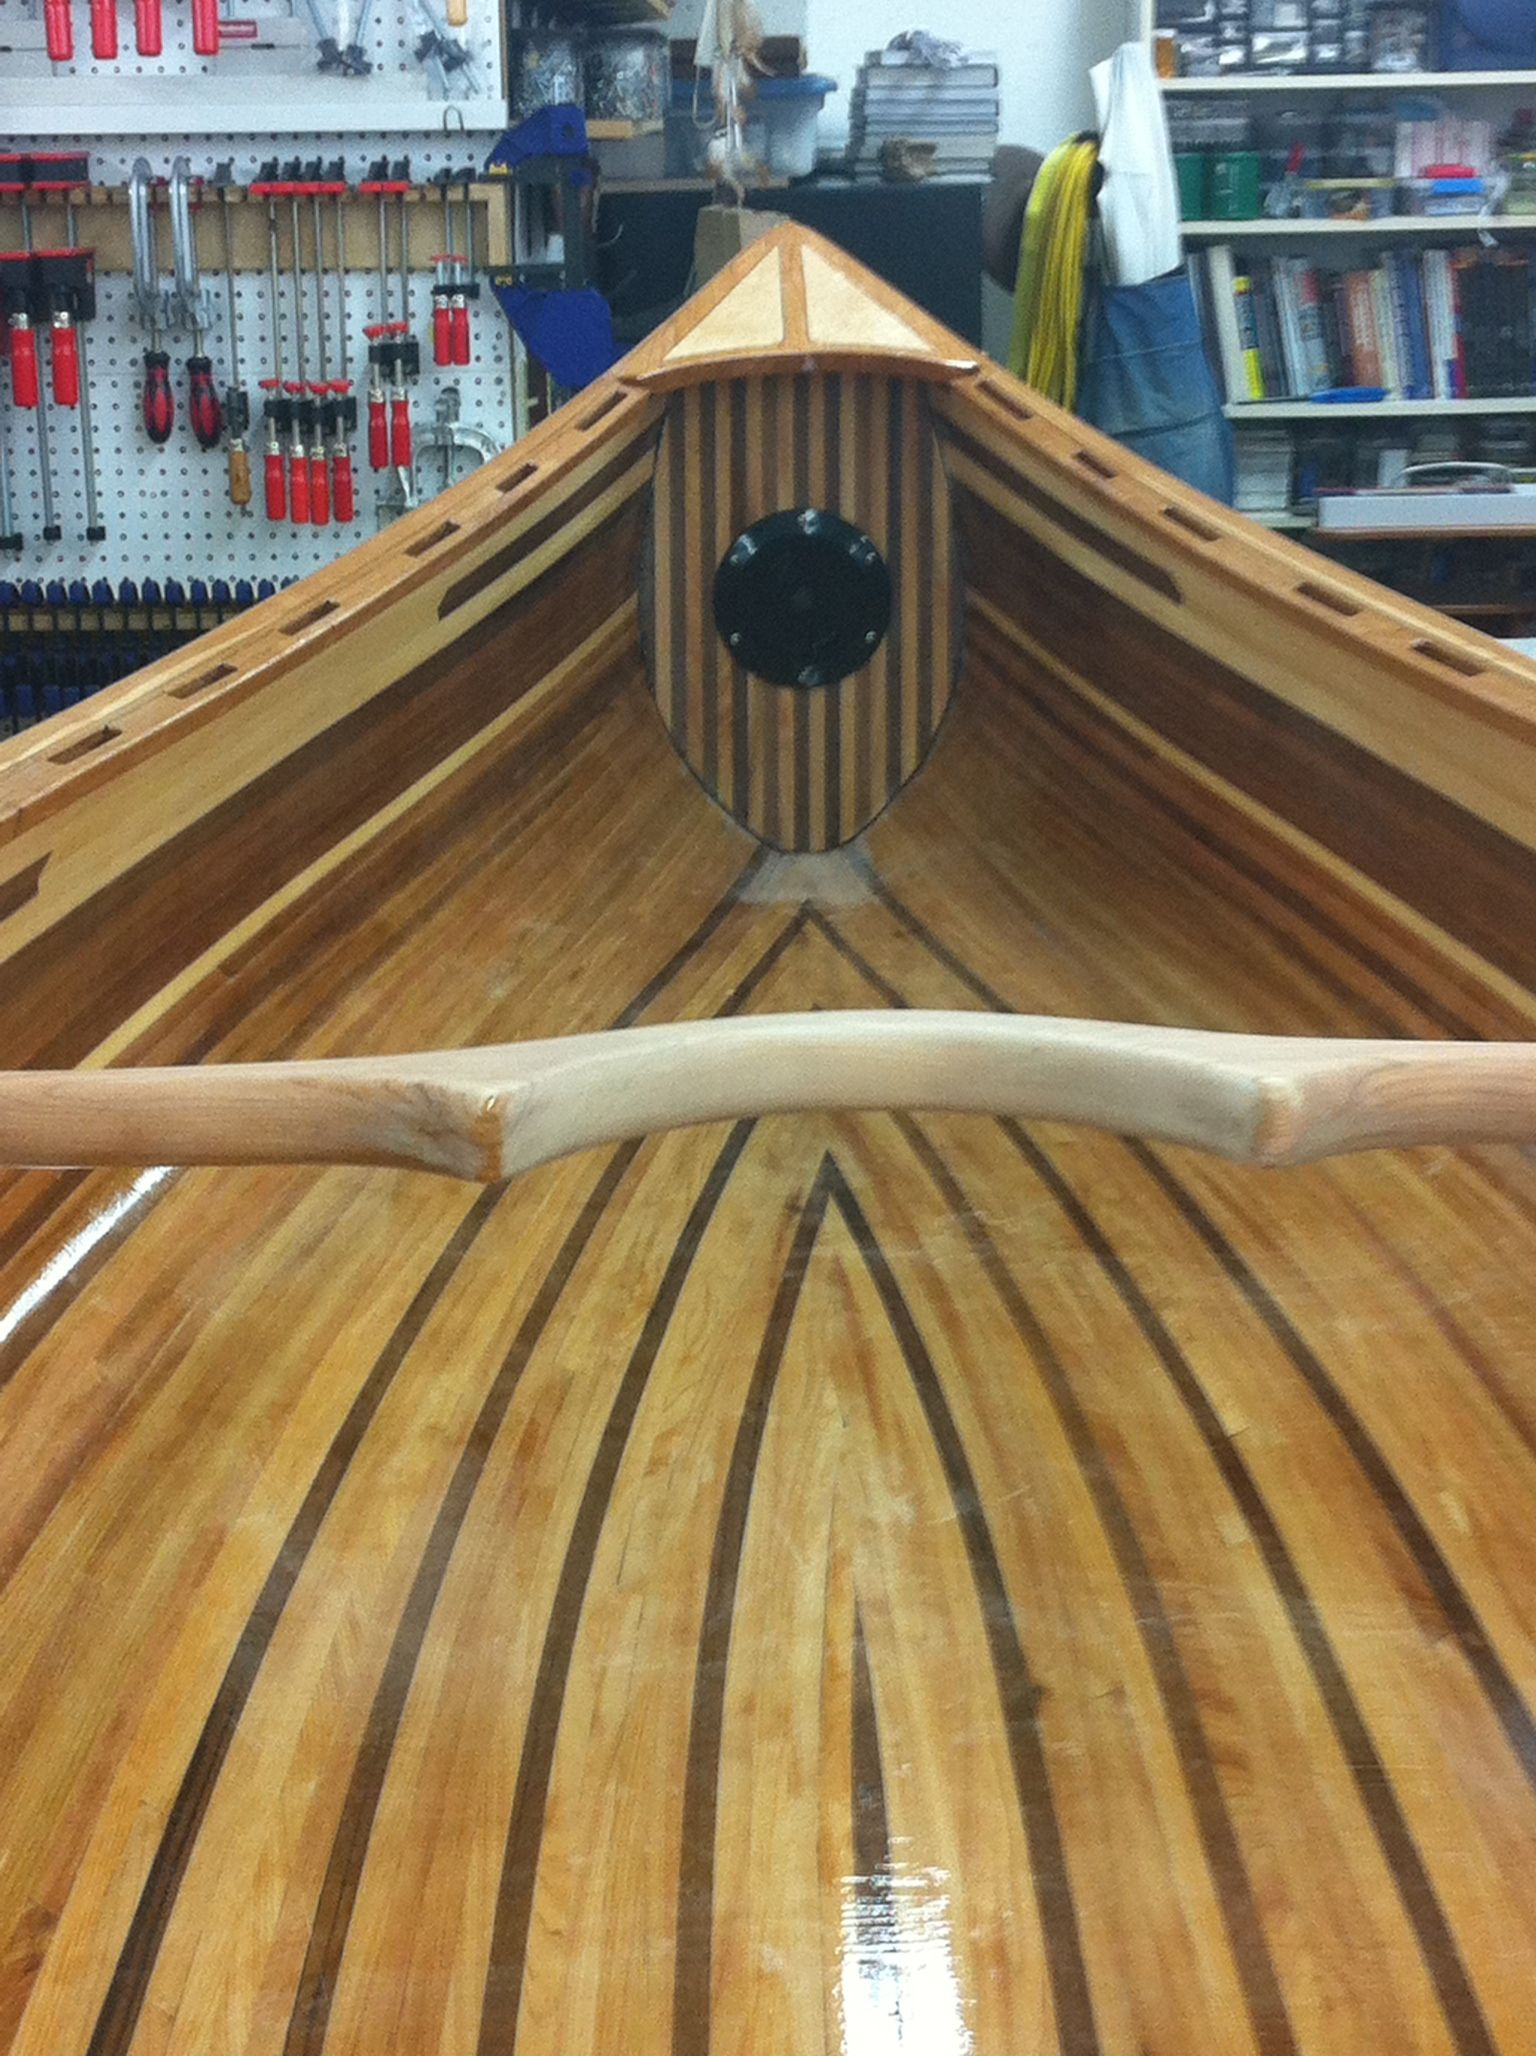 Yoke, decks & bulkheads installed | First Cedar Strip Canoe | Kayak boats, Wood canoe, Canoe boat